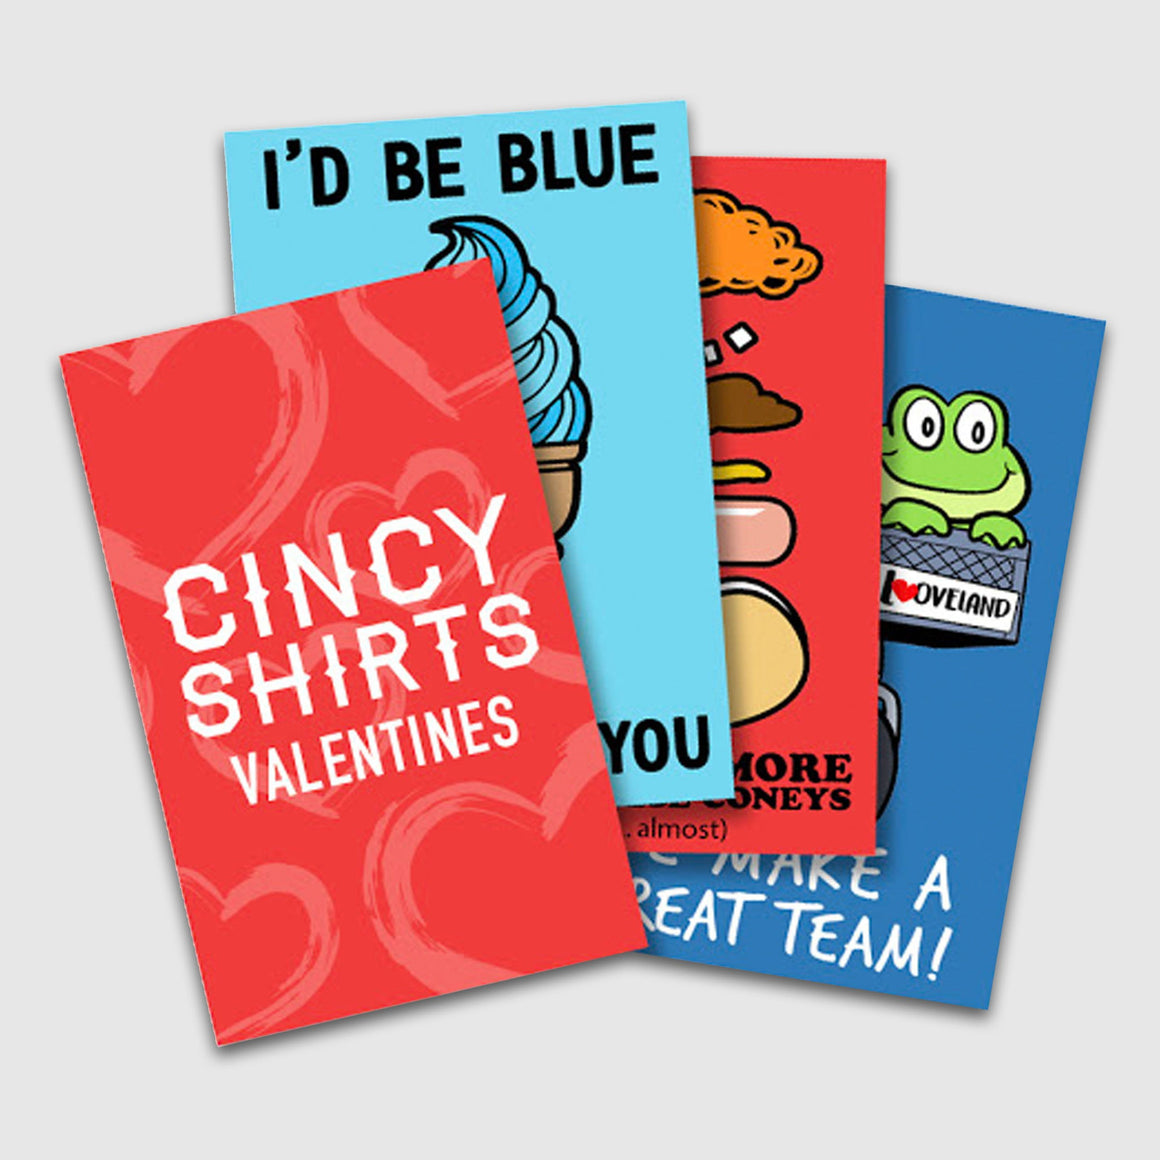 Cincinnati Themed Valentine's Day Cards - Cincy Shirts